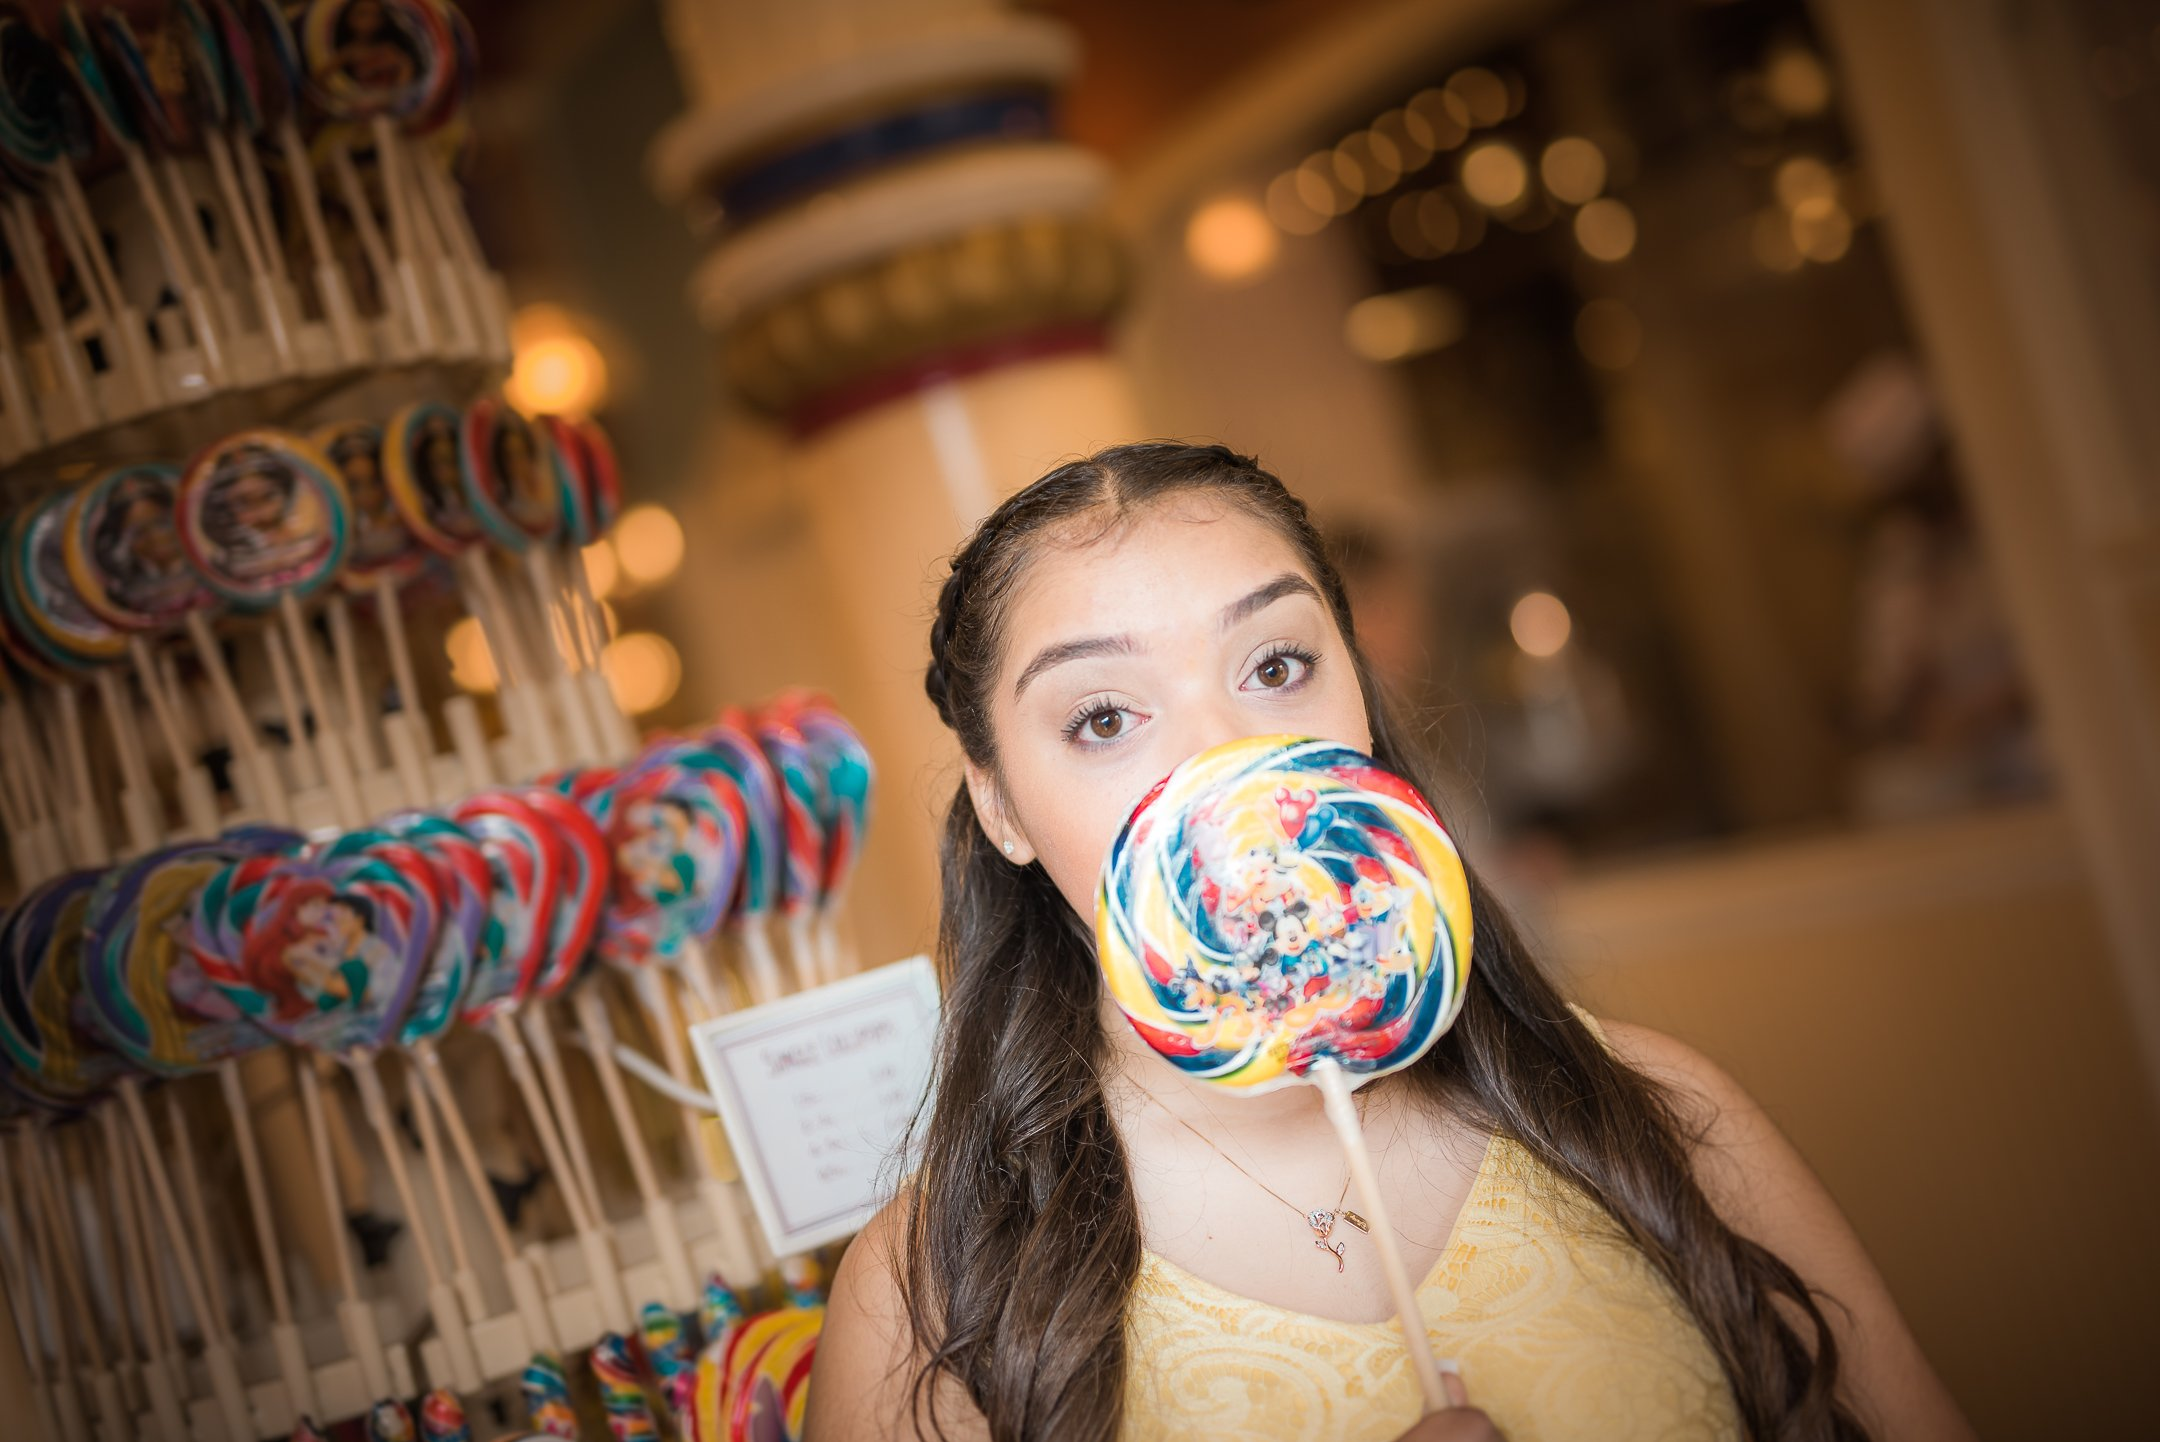 Disneyland Quinceanera photo session - In the penny arcade on Main Street USA